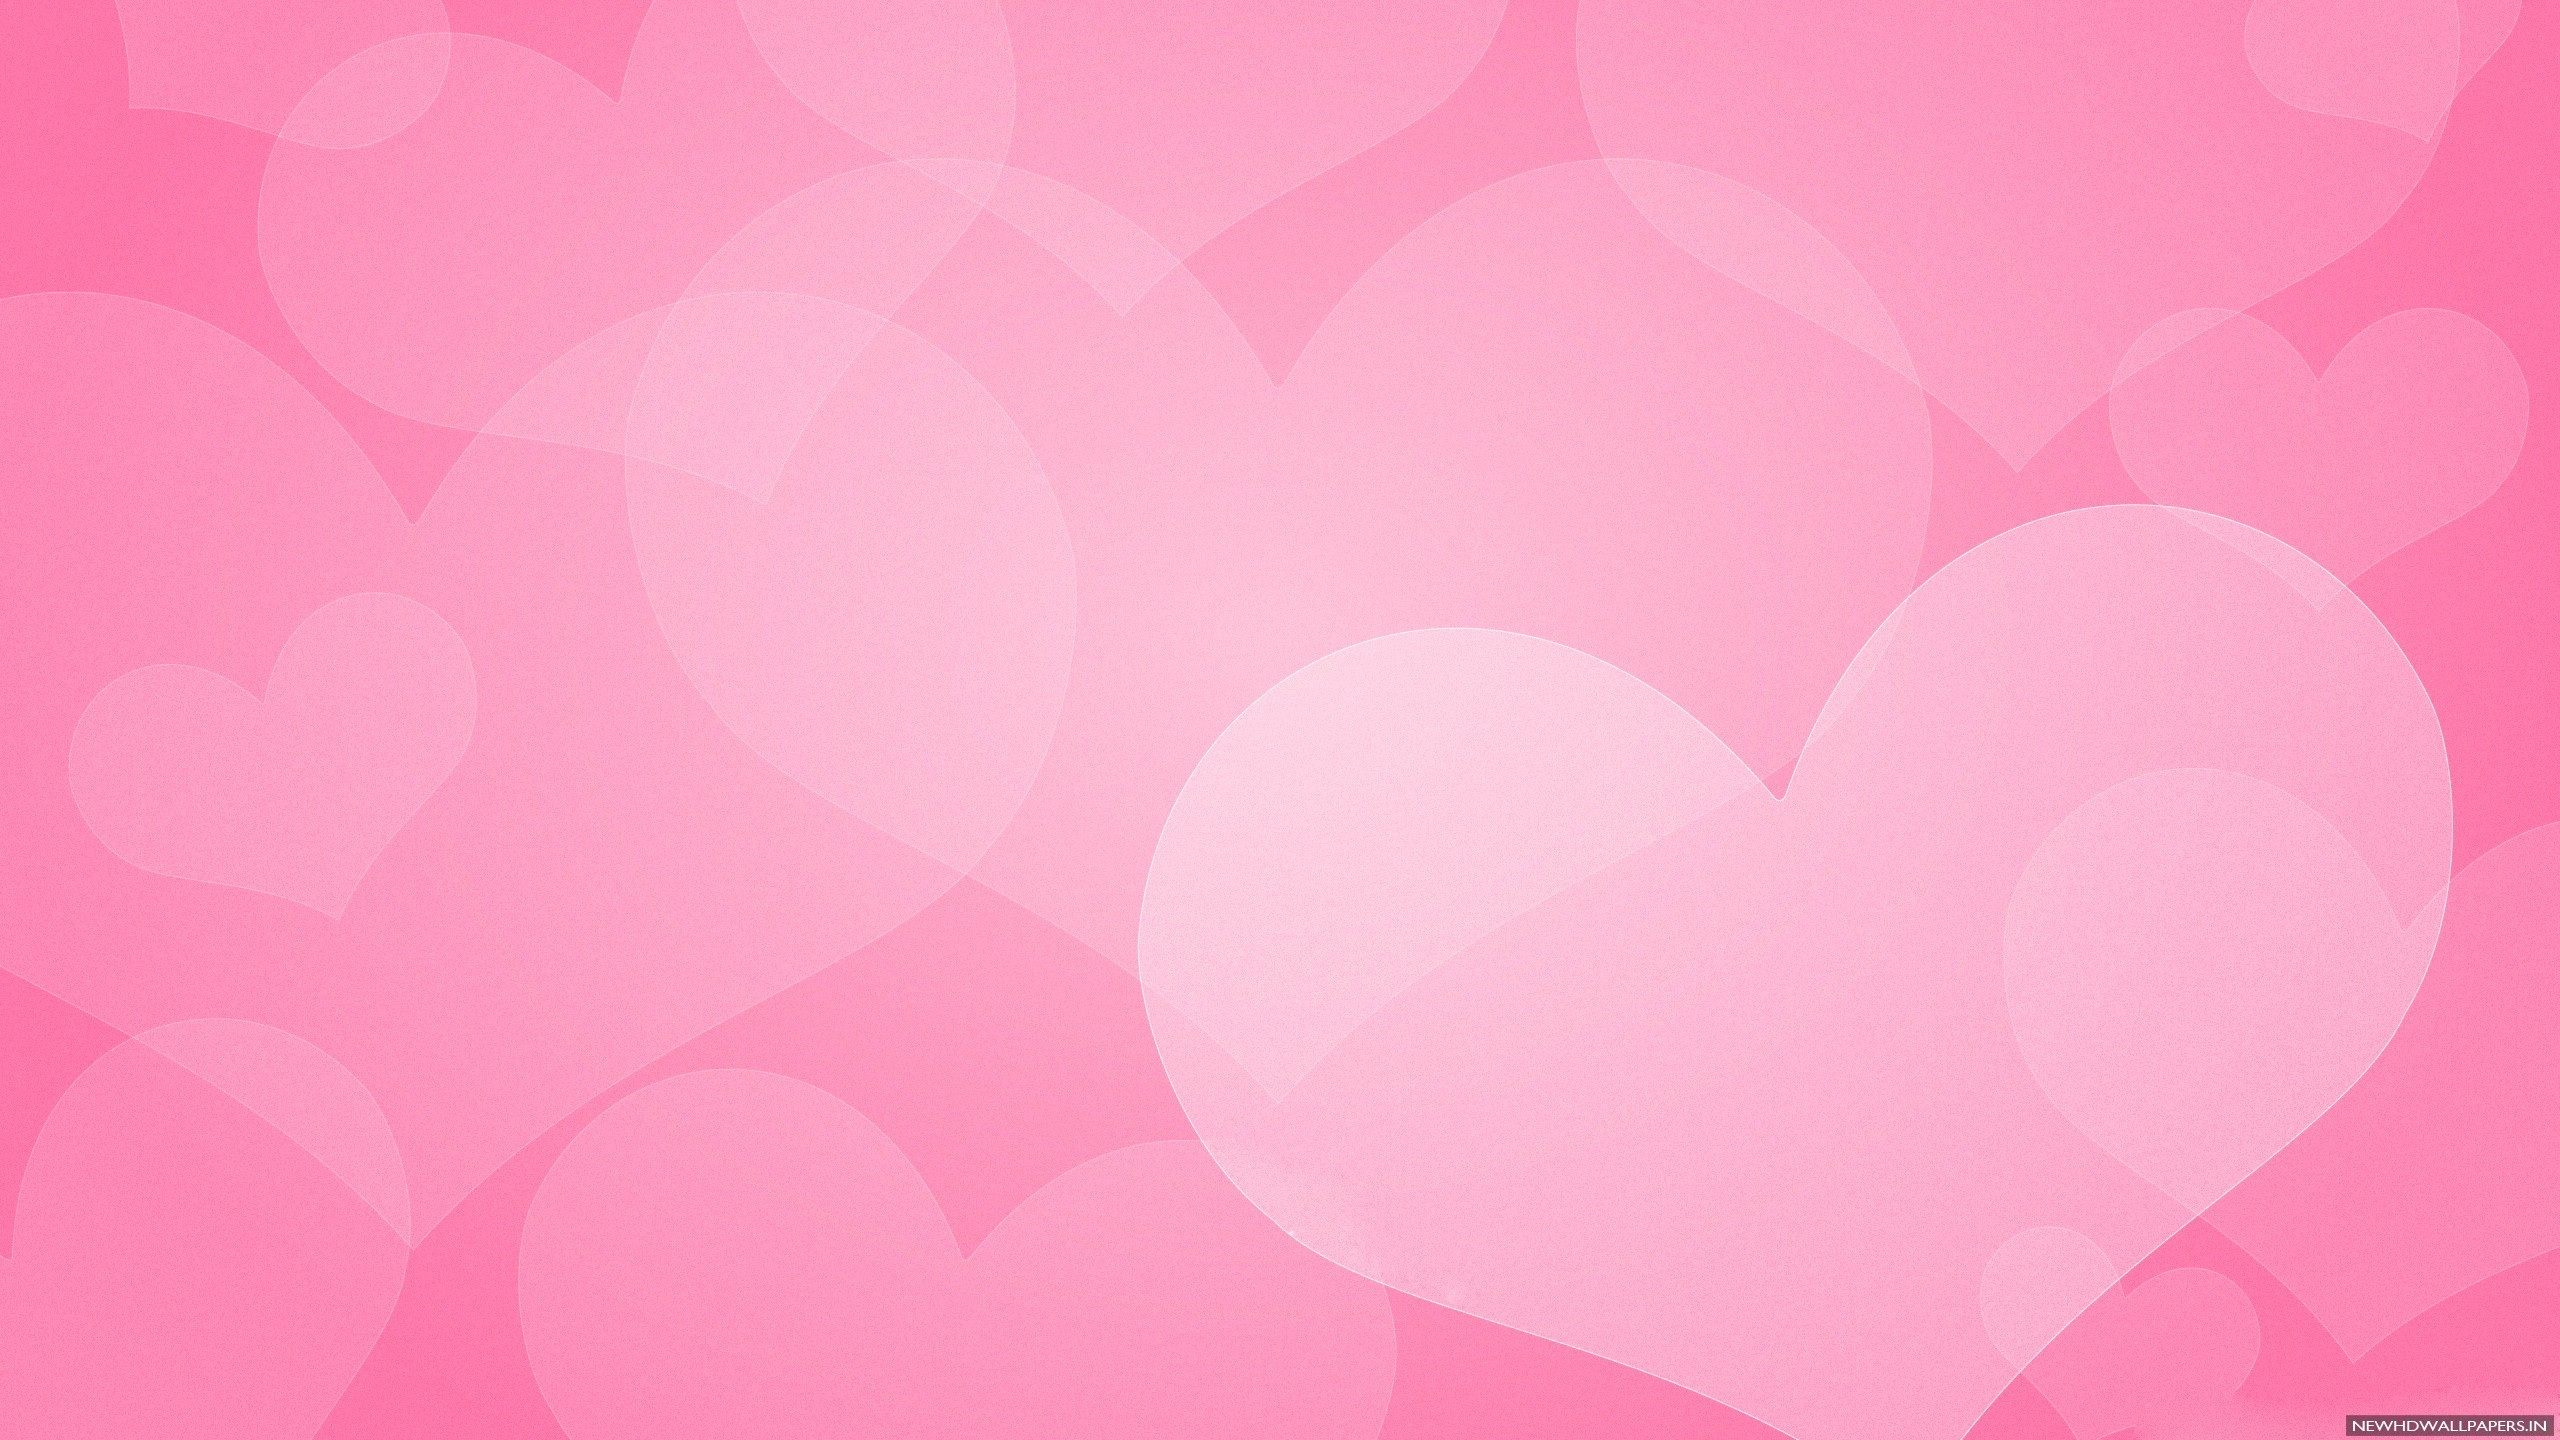 Love Wallpaper In Big Size : Love Background - WallpaperSafari